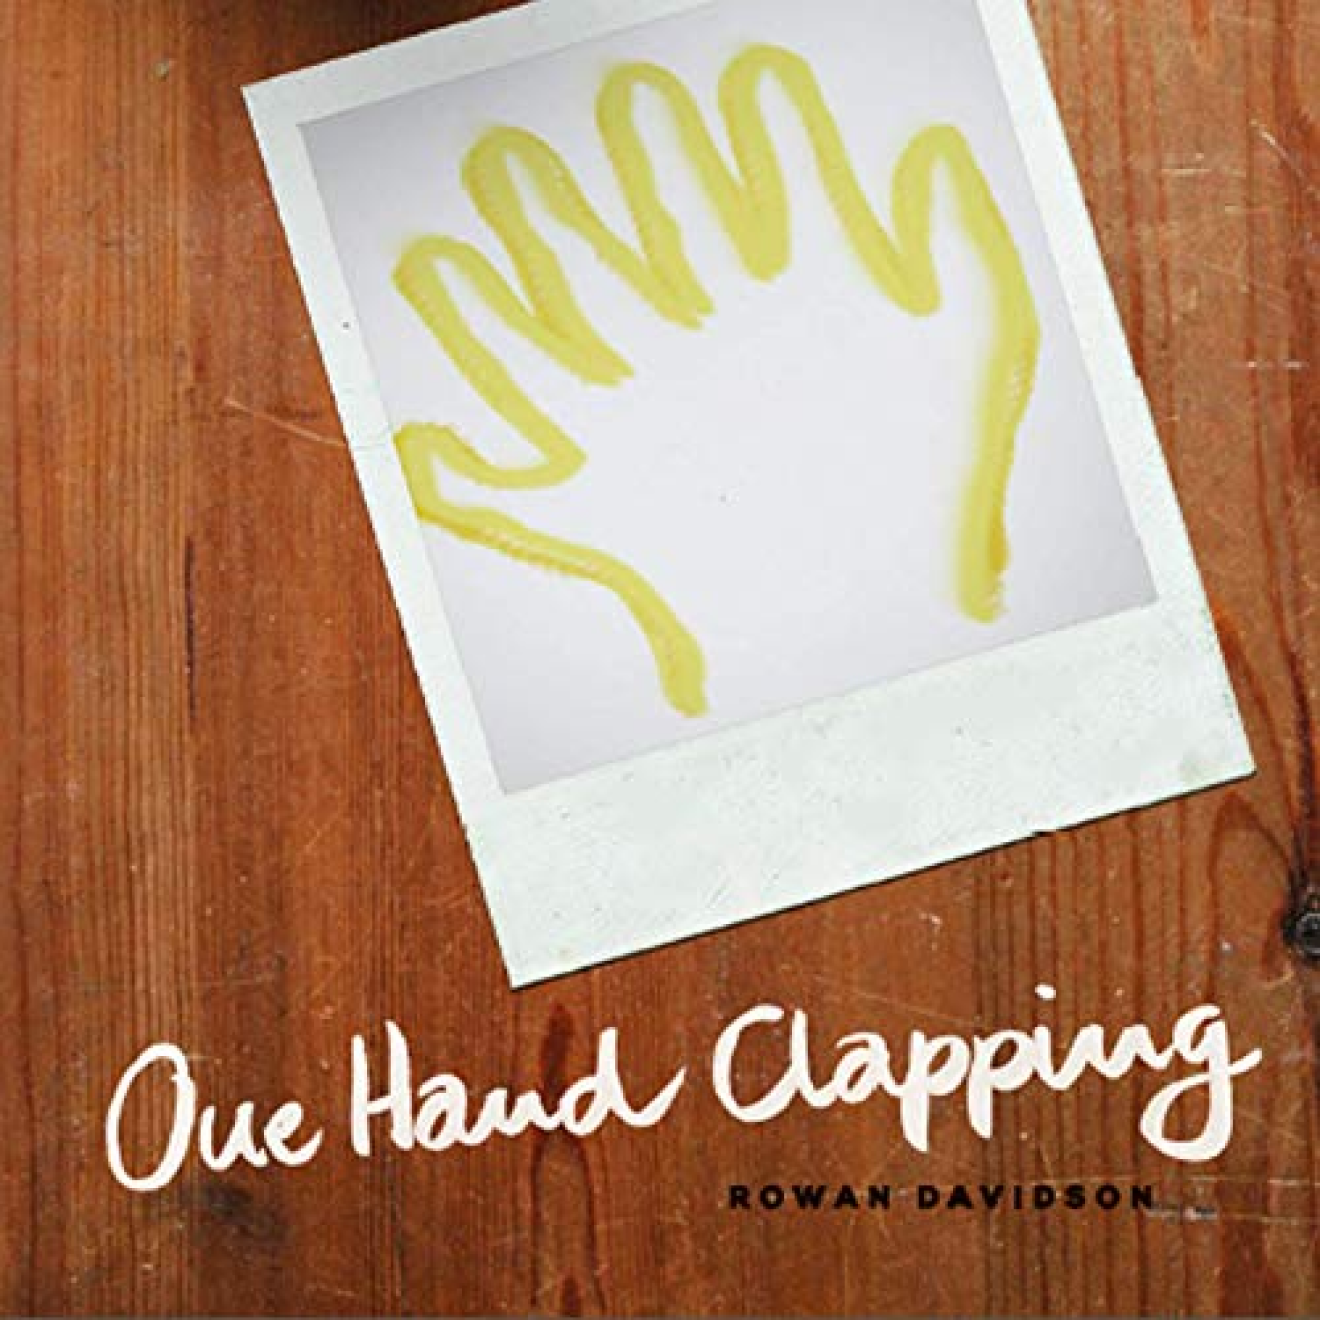 One hand clapping album